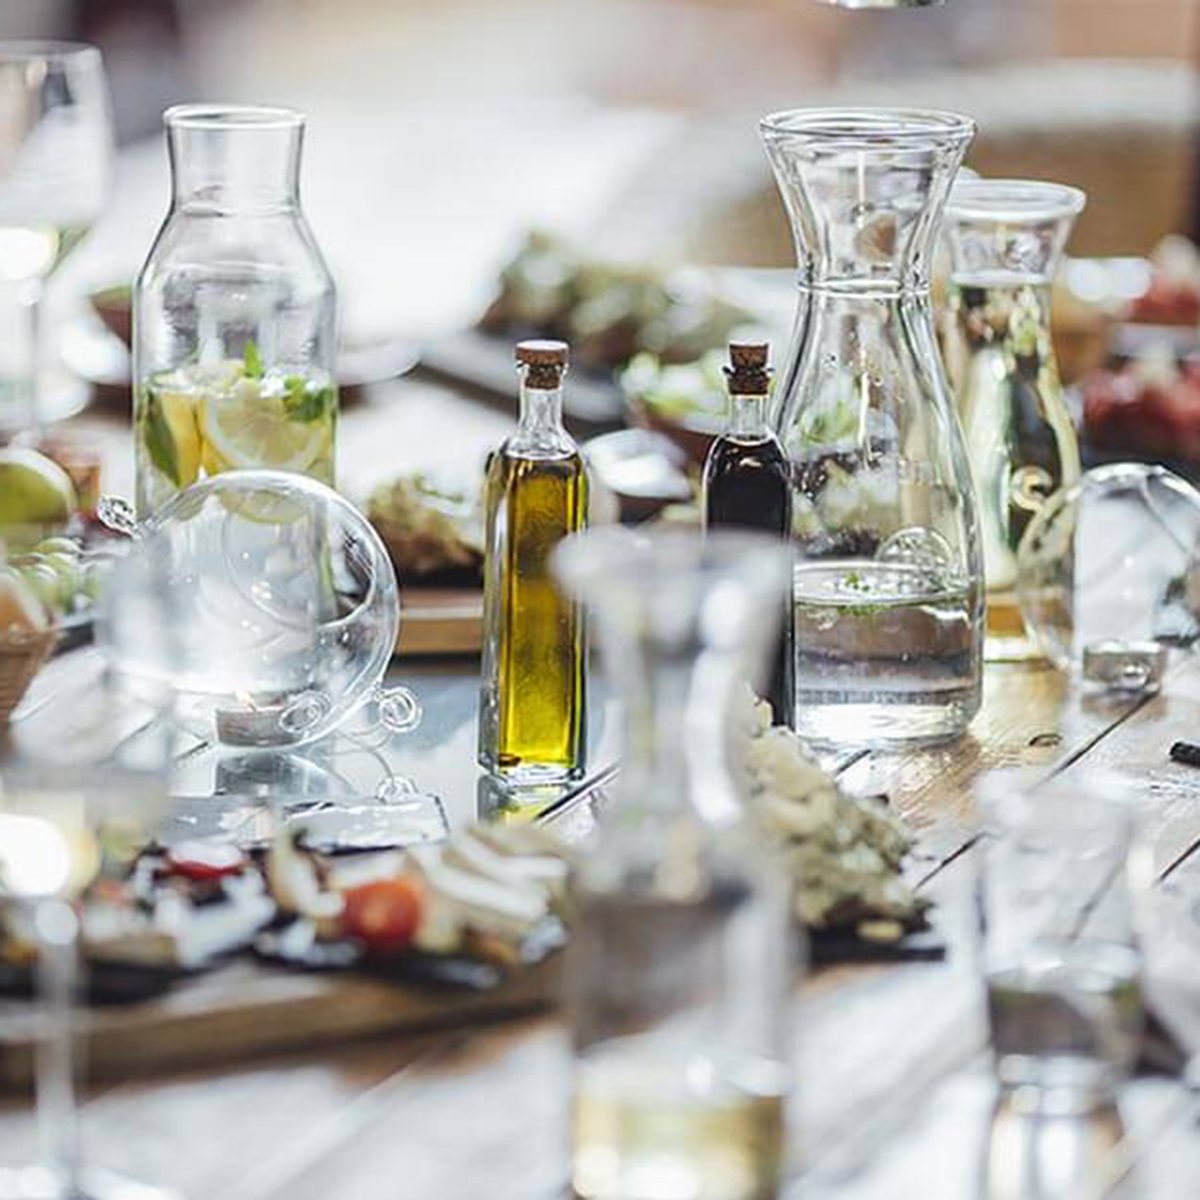 Table spread including olive oil, glasses of water, and appetizers